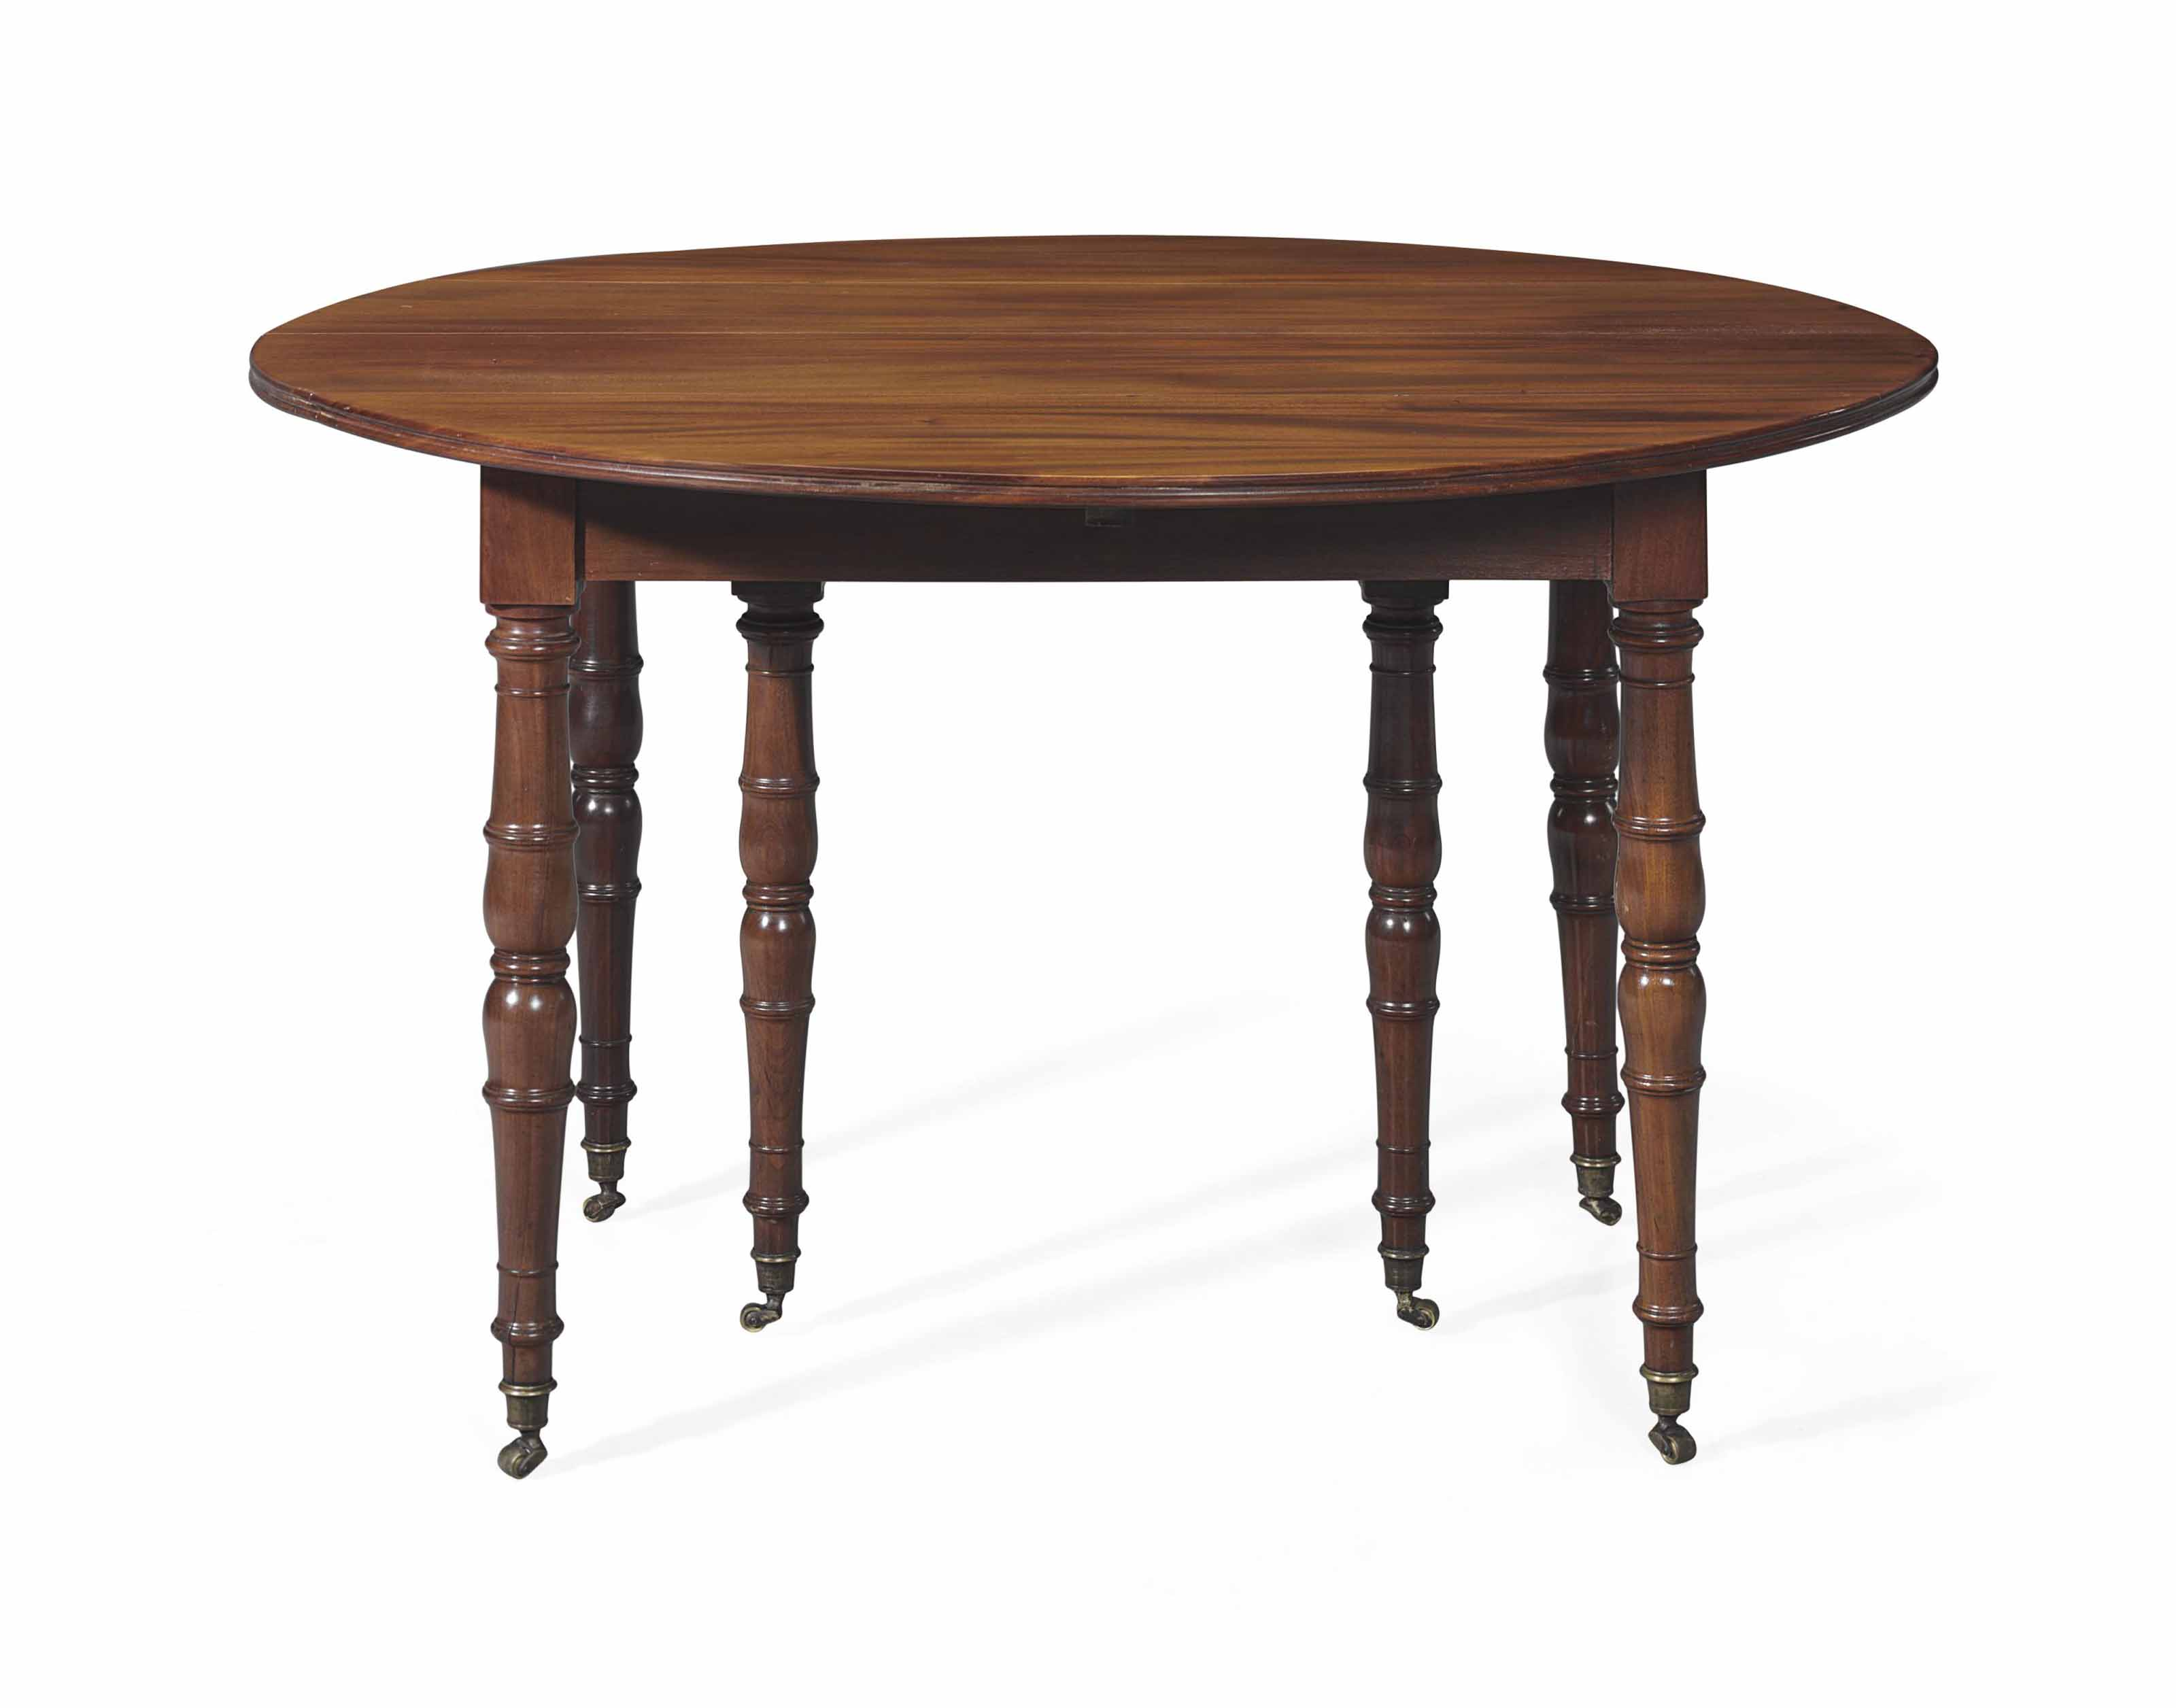 A LOUIS PHILIPPE MAHOGANY EXTENDING DINING TABLE